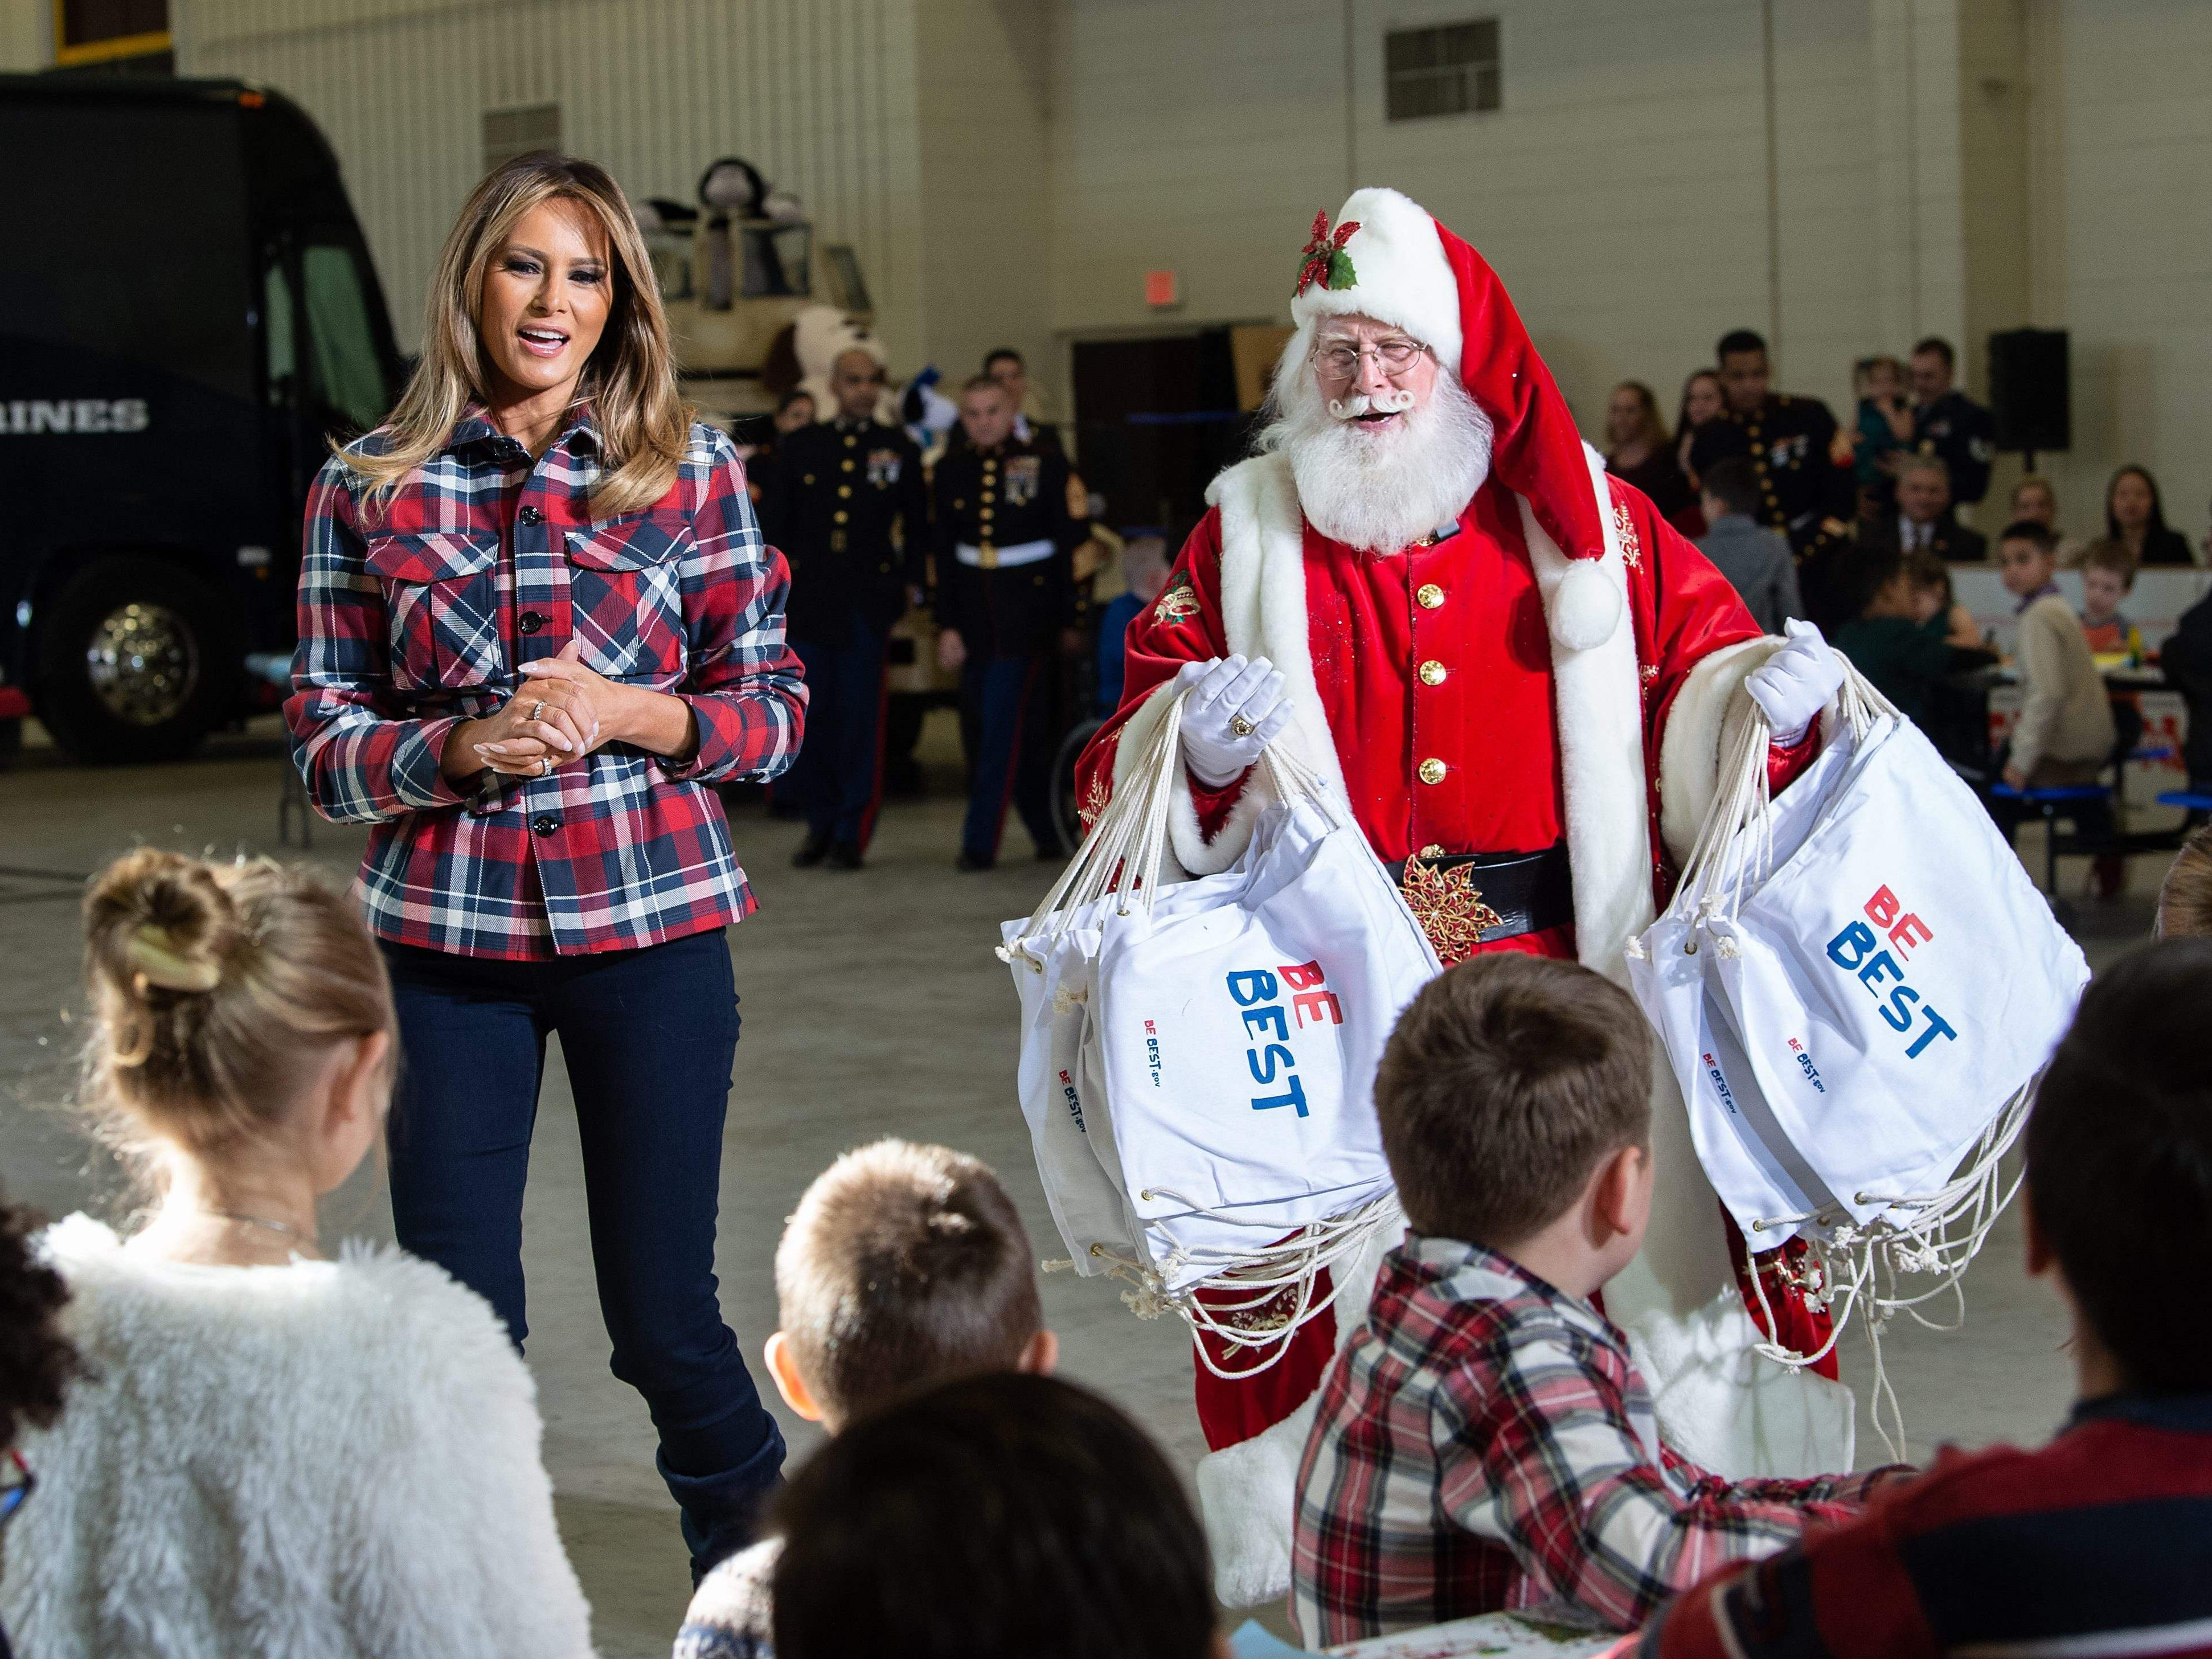 First lady Melania Trump attends a Toys for Tots event at Joint Base Anacostia-Bolling in Washington, D.C., on Dec. 11, 2018.